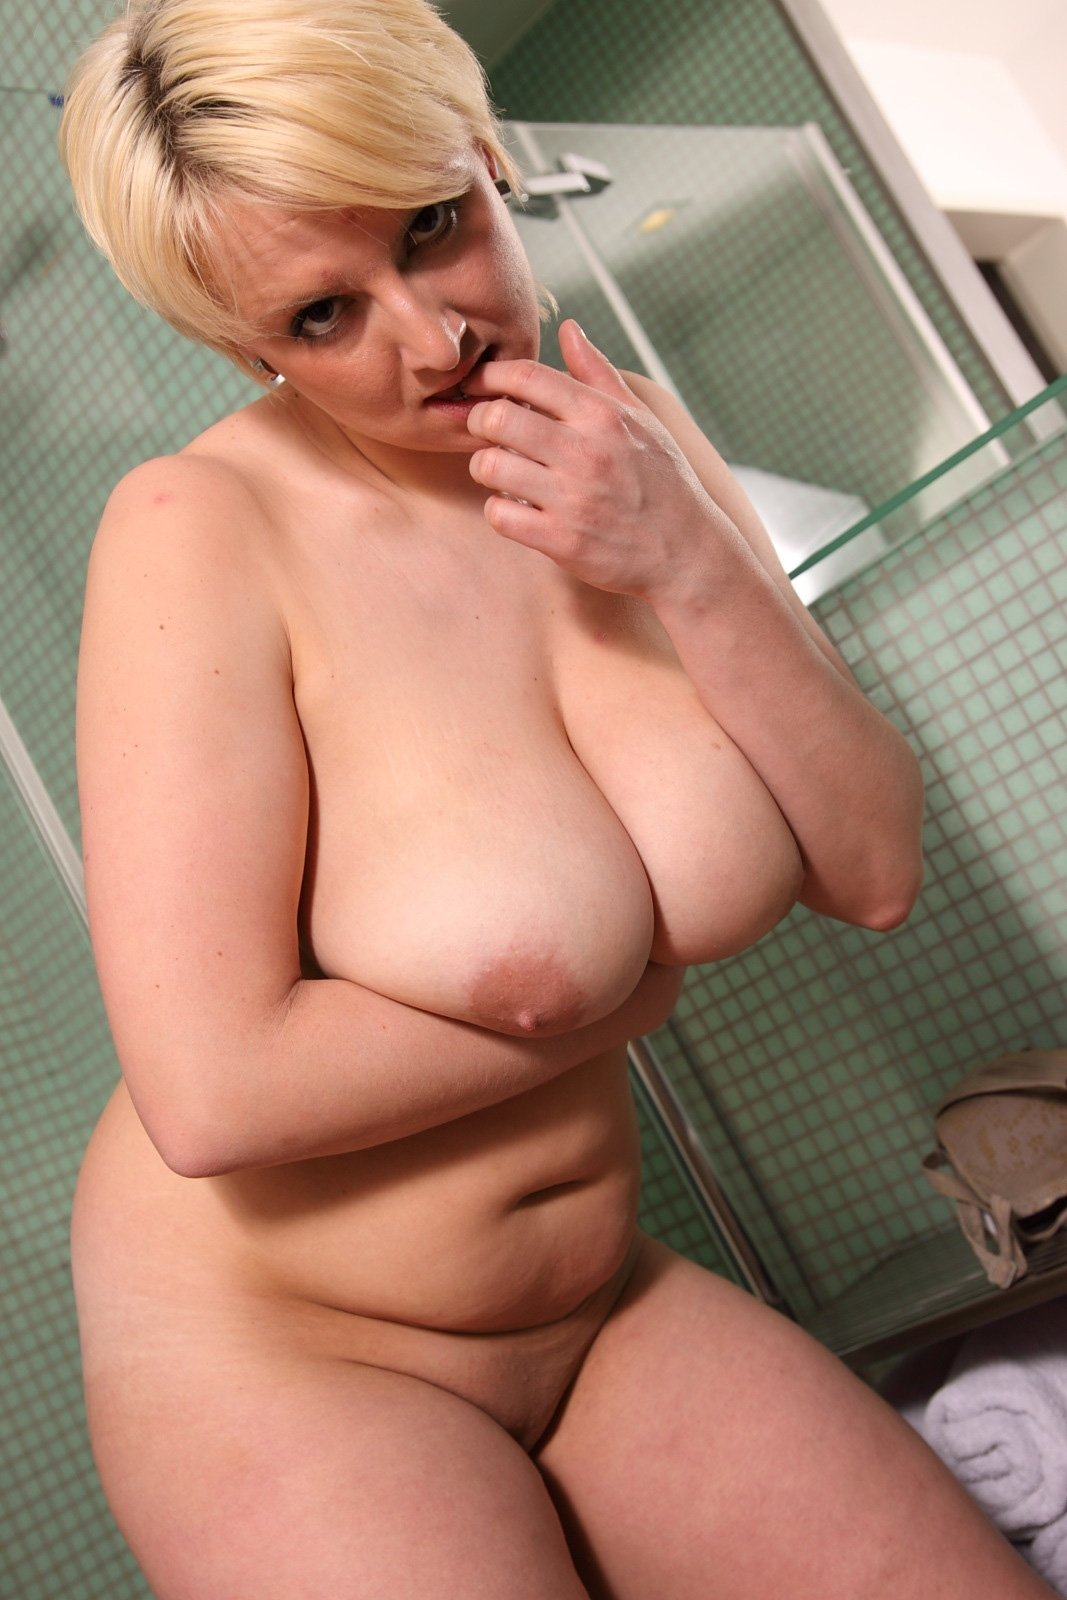 Free Short Hair Saggy Tits Solo Mirror Milf Blonde Shower -9609